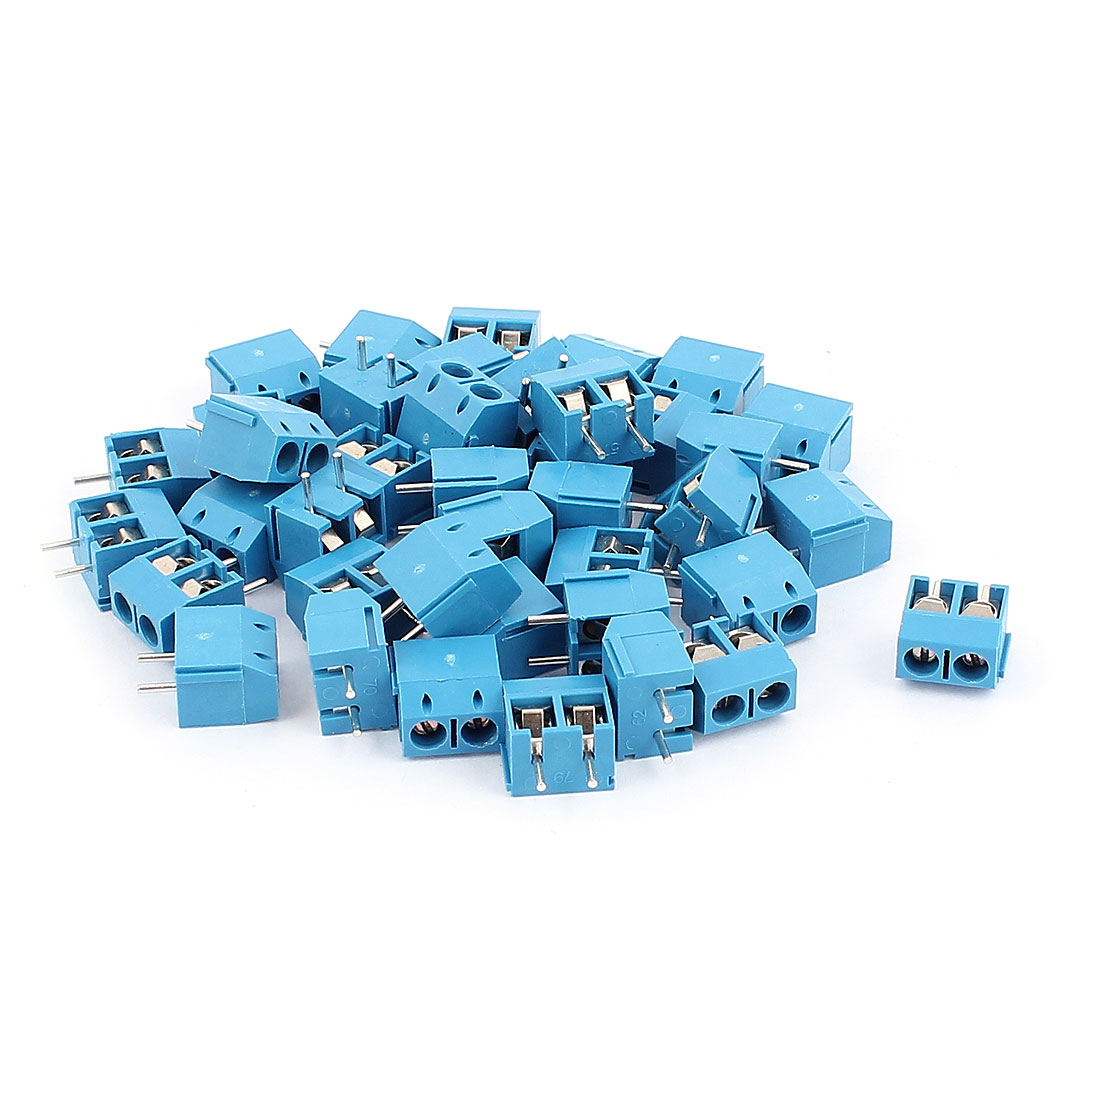 40Pcs AC 300V 16A KF301-5.0 2 Pins 5mm Pinch PCB Mounting Screw Terminal Block Connector